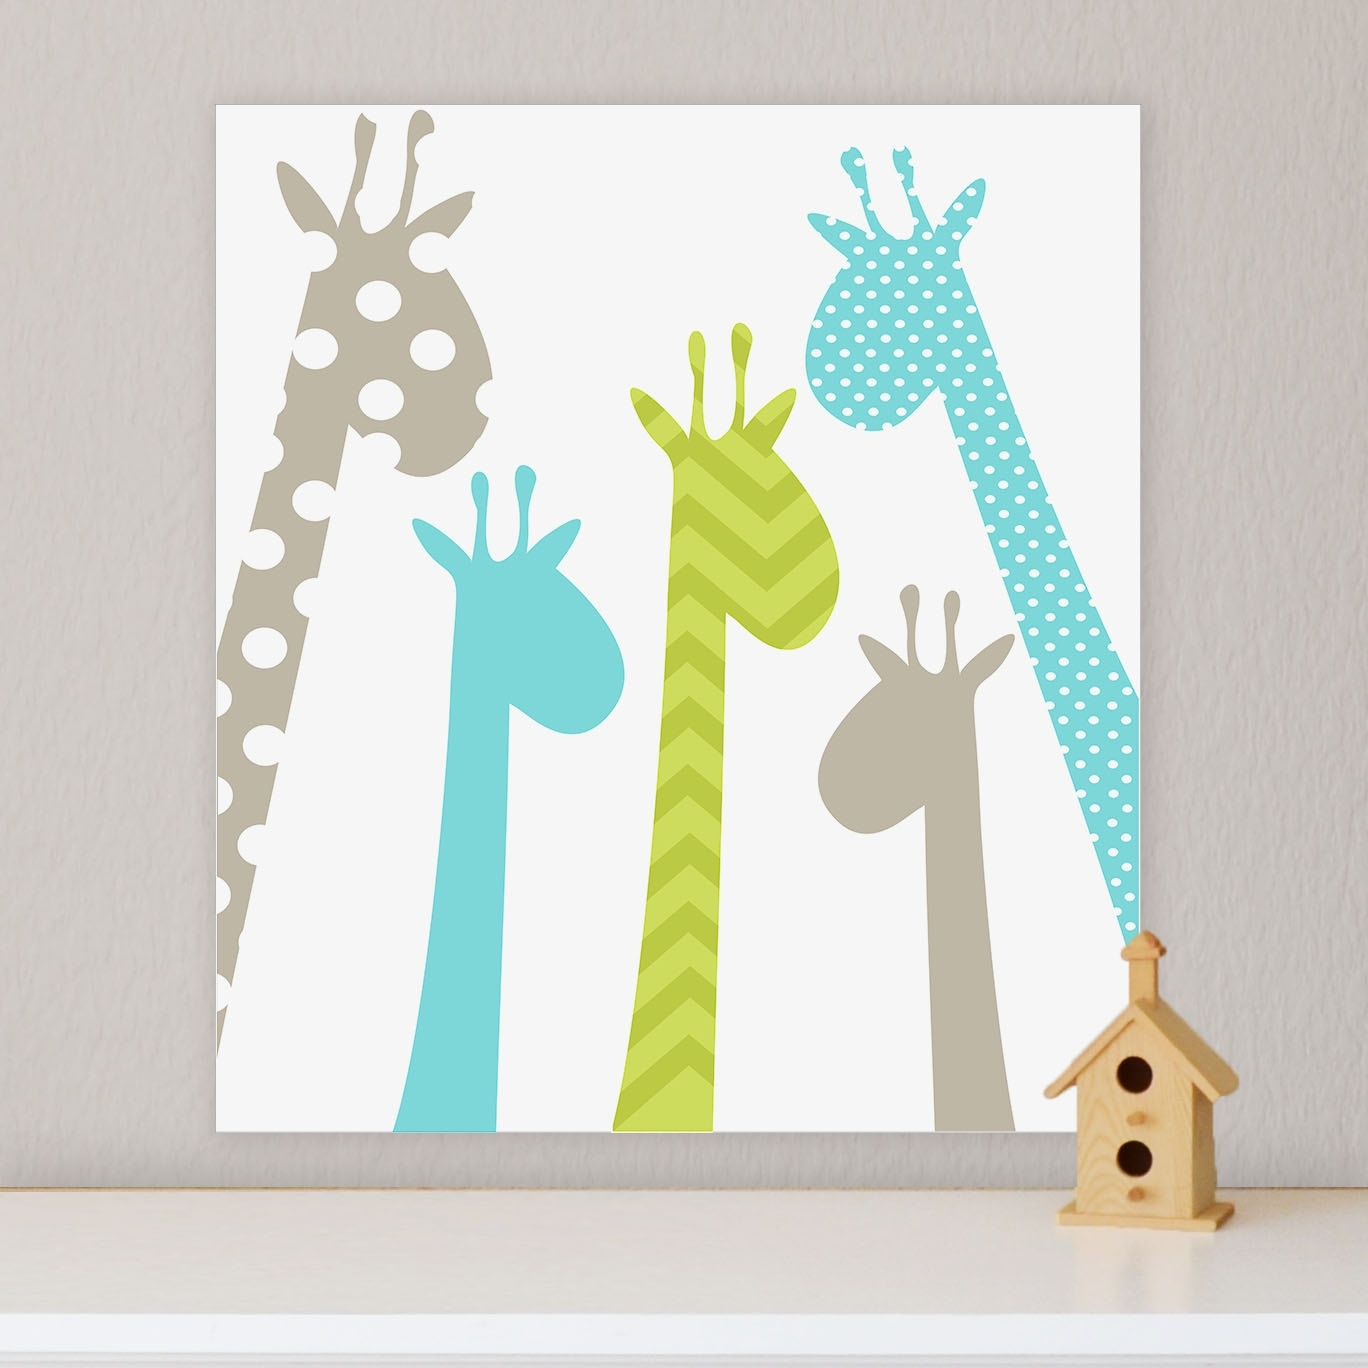 Canvas Wall Art For Kids Rooms – Dronemploy #00C8F2Ef646C For Current Baby Room Canvas Wall Art (View 8 of 15)